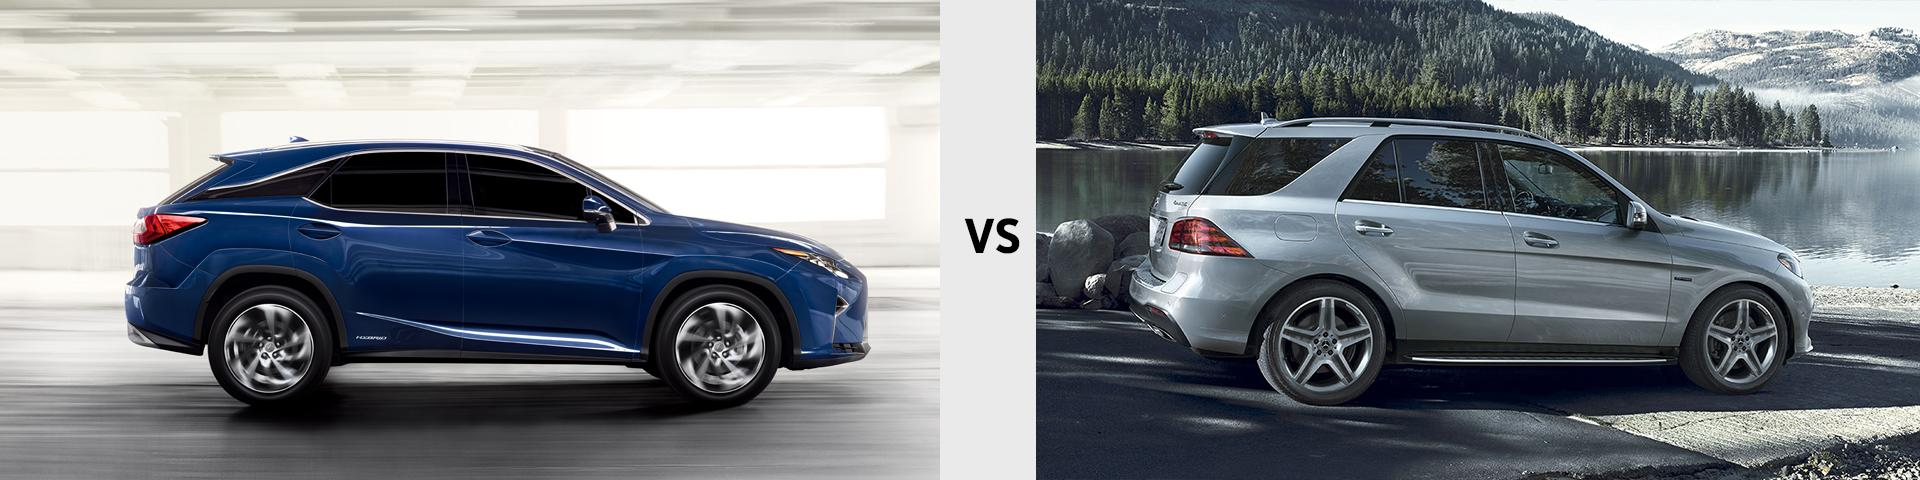 2019 Lexus RX vs 2019 Mercedes Benz GLE